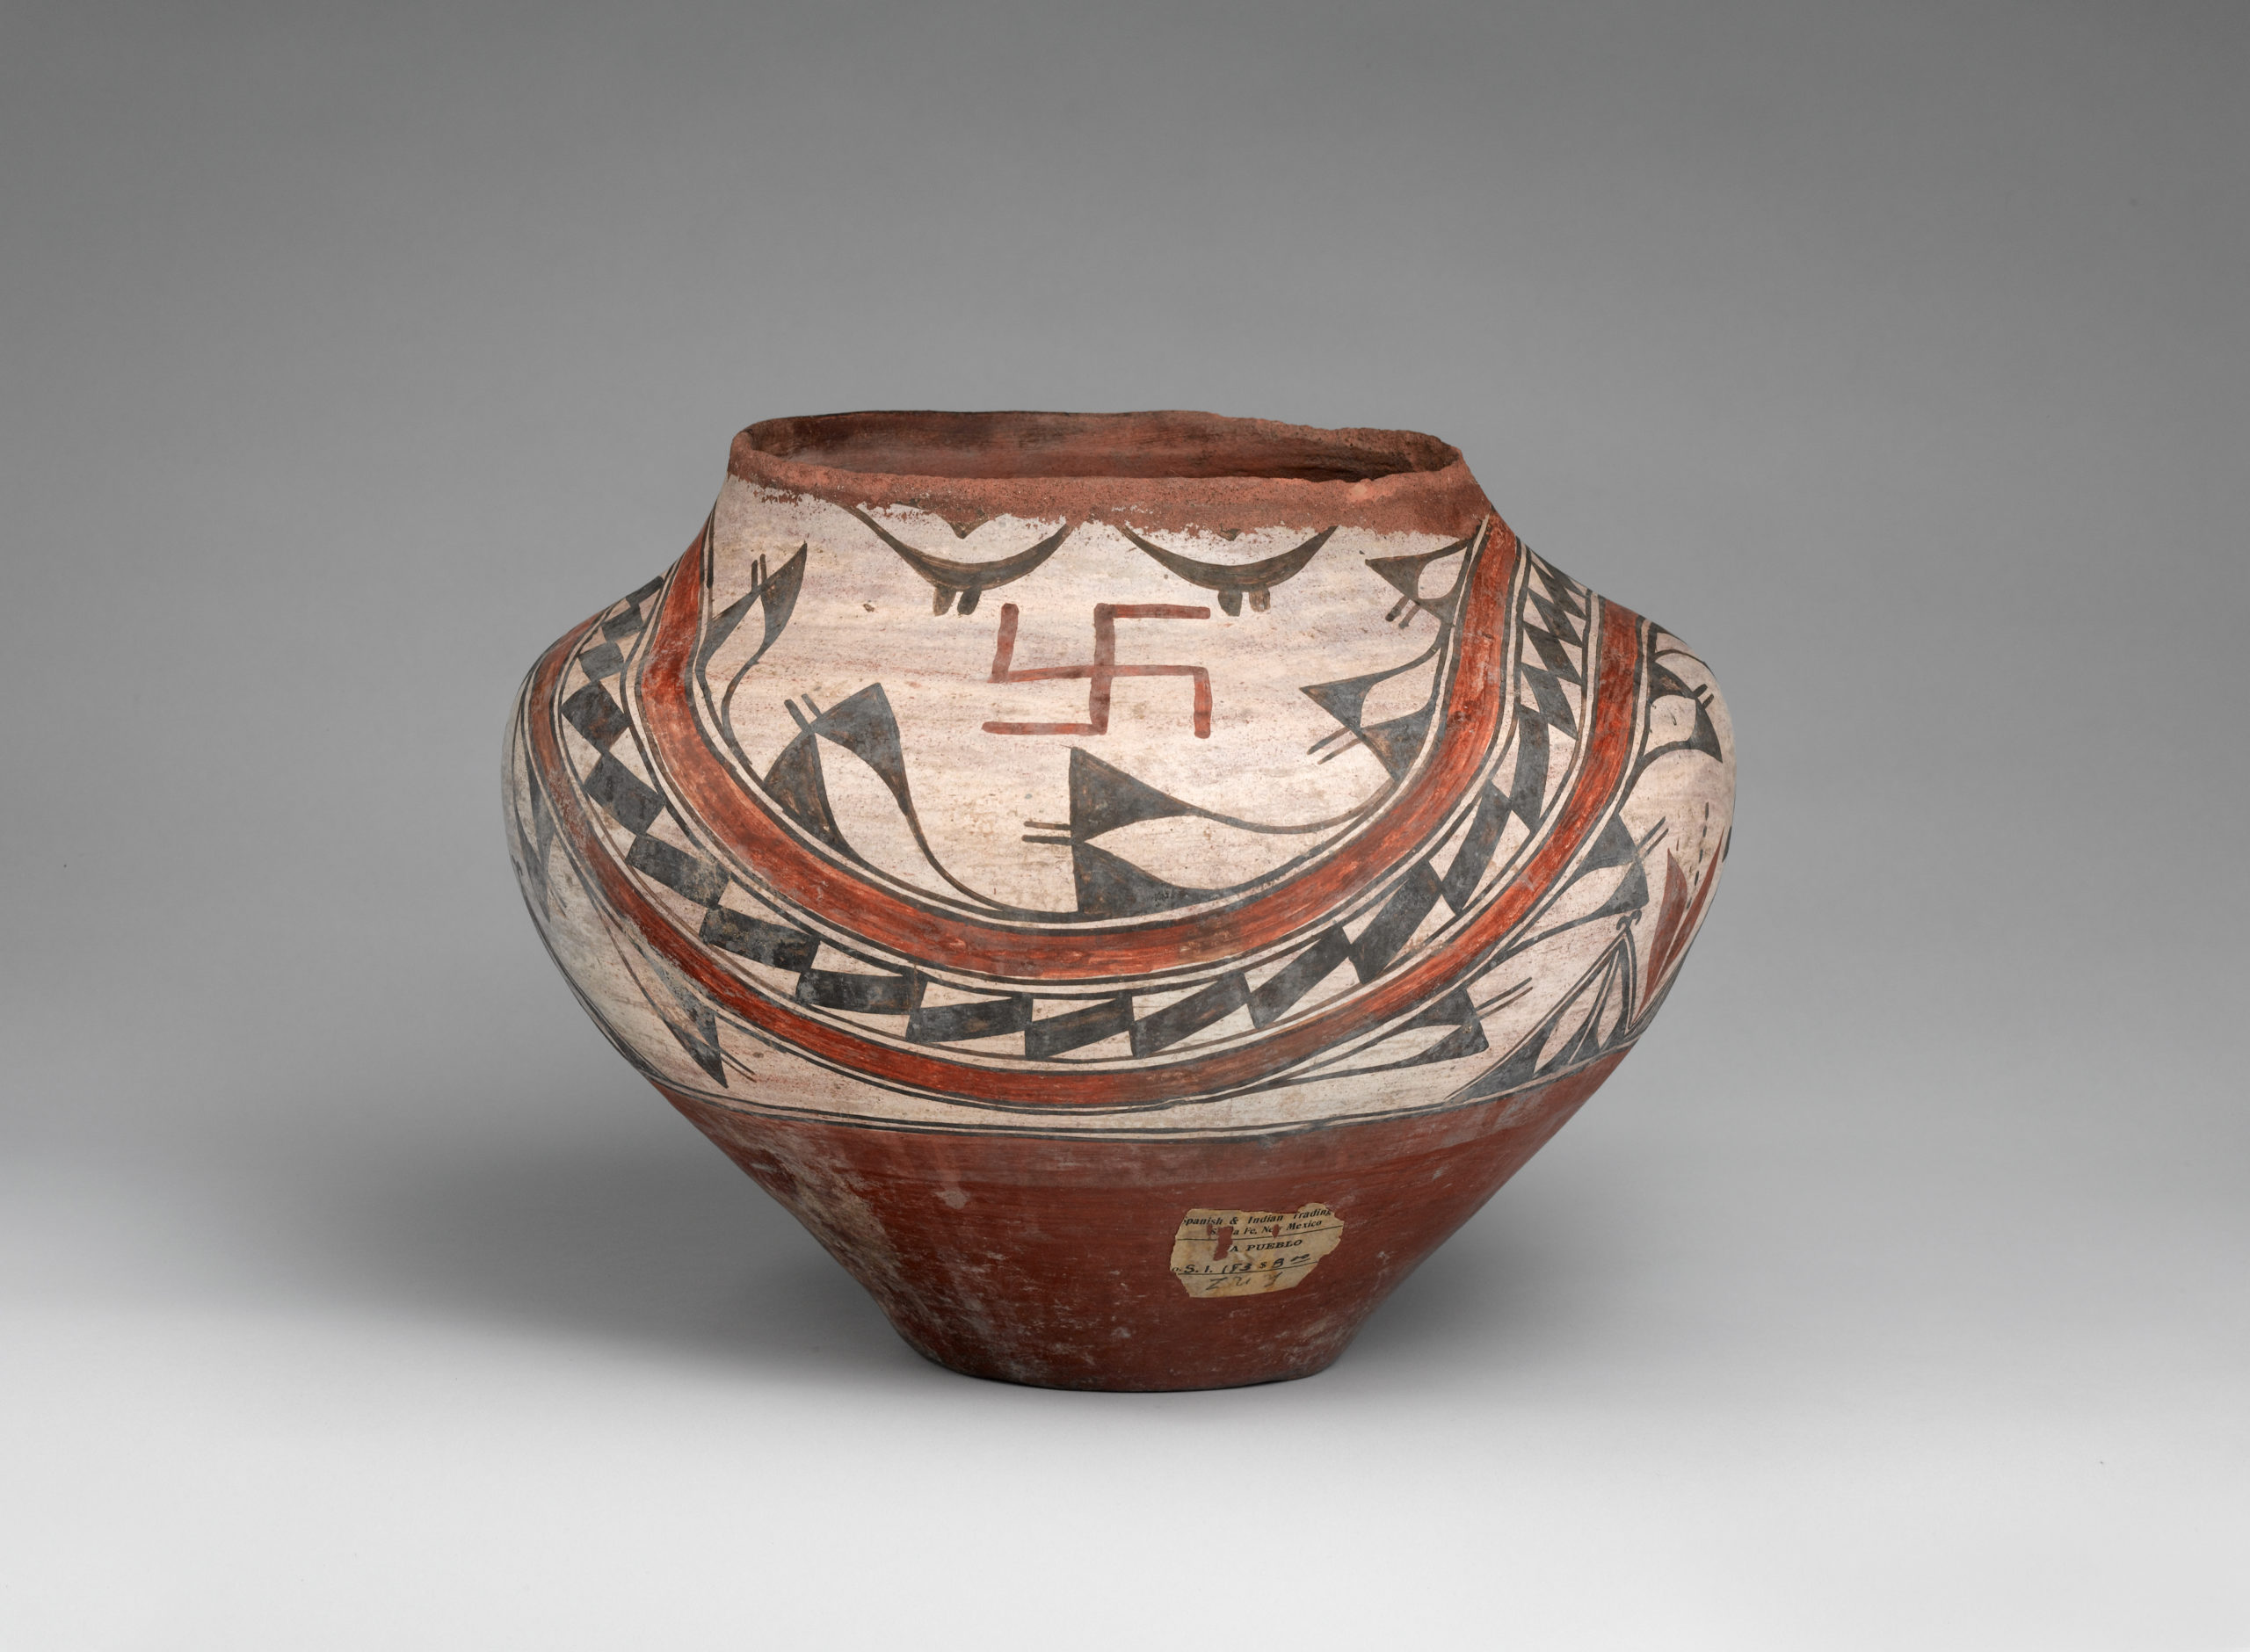 A Zia olla with an abstract design and two whirling log symbols painted in beige, brown, and black.